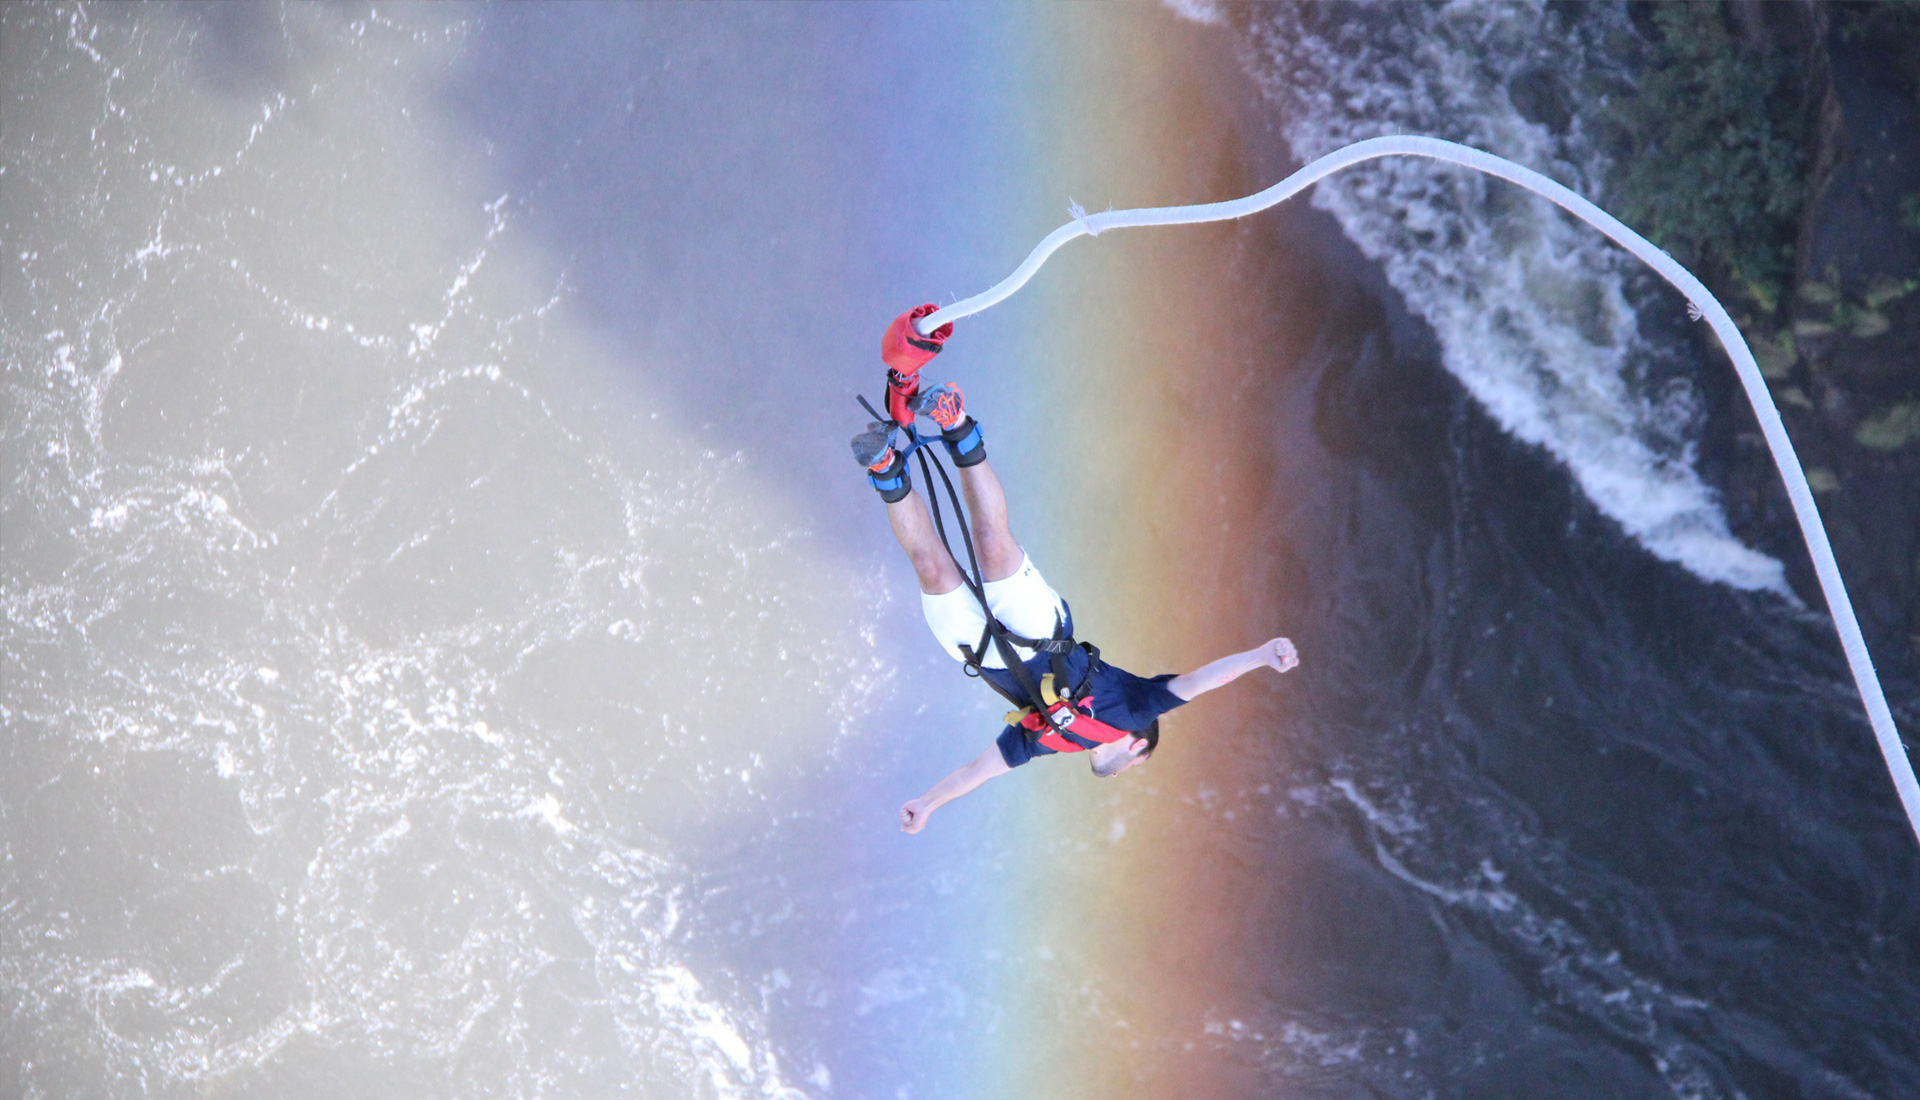 Shearwater-Bungee-Victoria-Falls